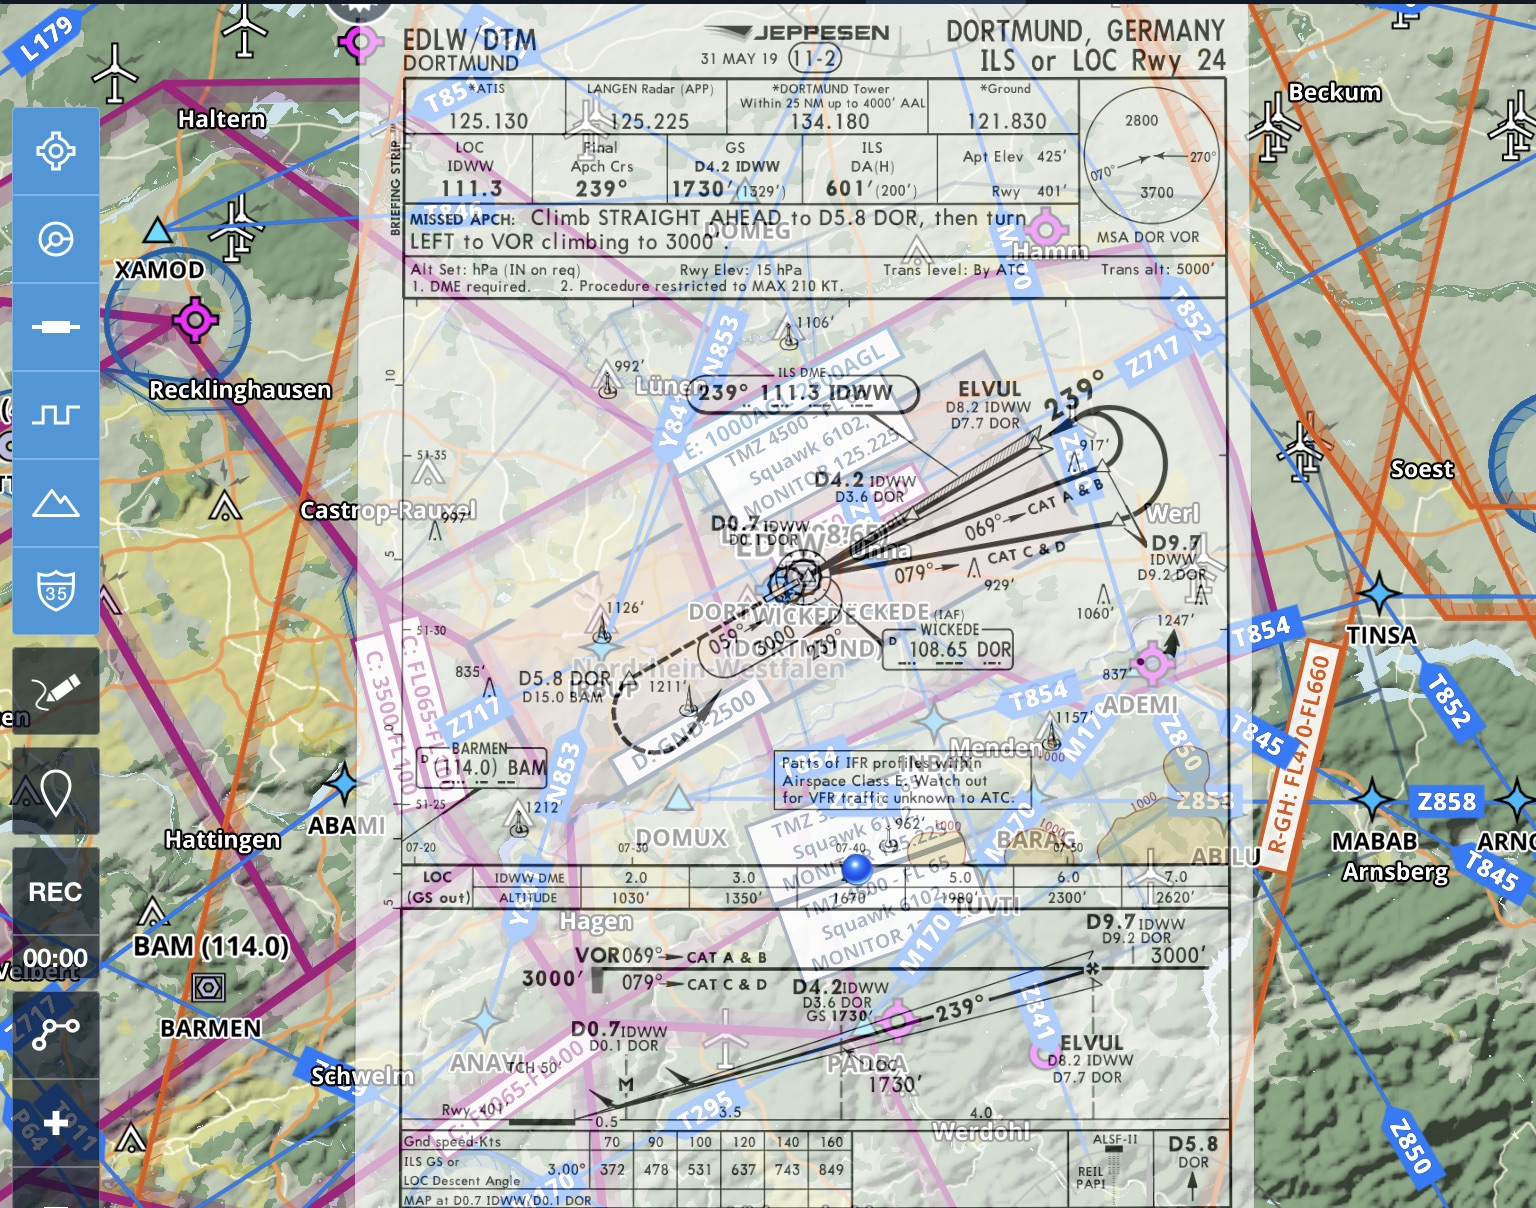 Copyright for Screenshot: Jeppesen and Foreflight